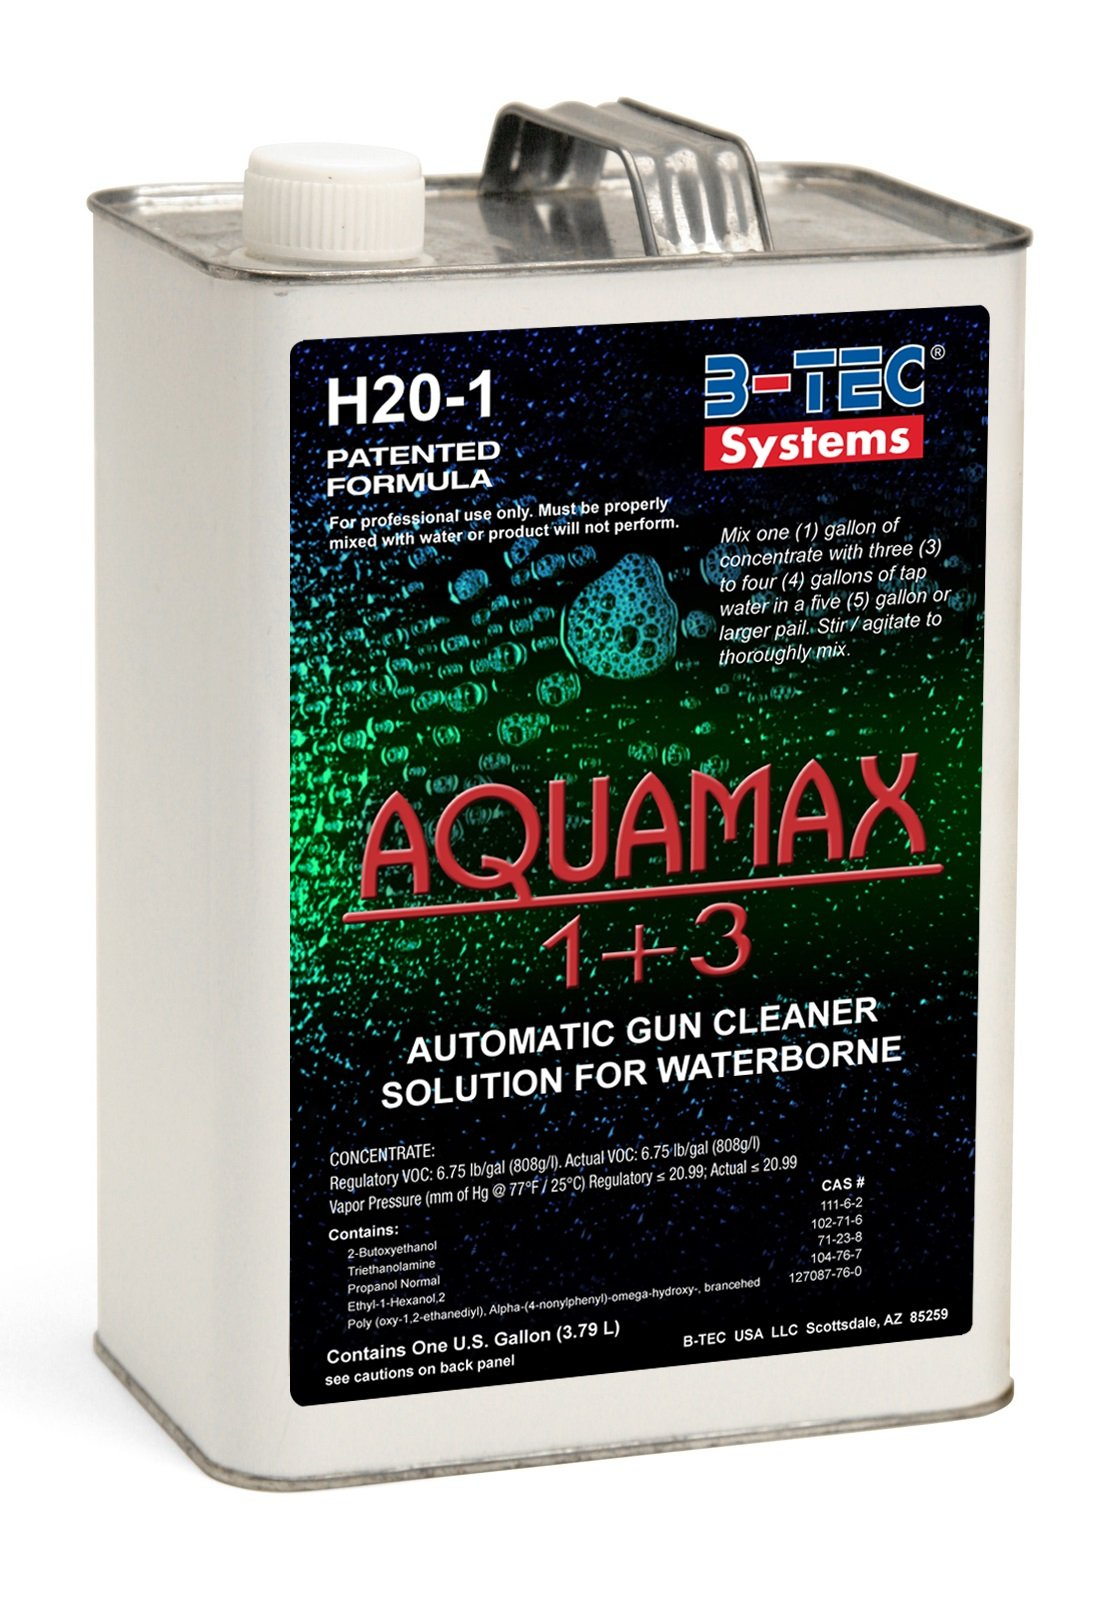 B-TEC Systems H2O-1 AquaMax 1+3 Automatic and Manual Spray Gun Cleaner for Waterborne Basecoats, 1 Gallon Container, National rule compliant